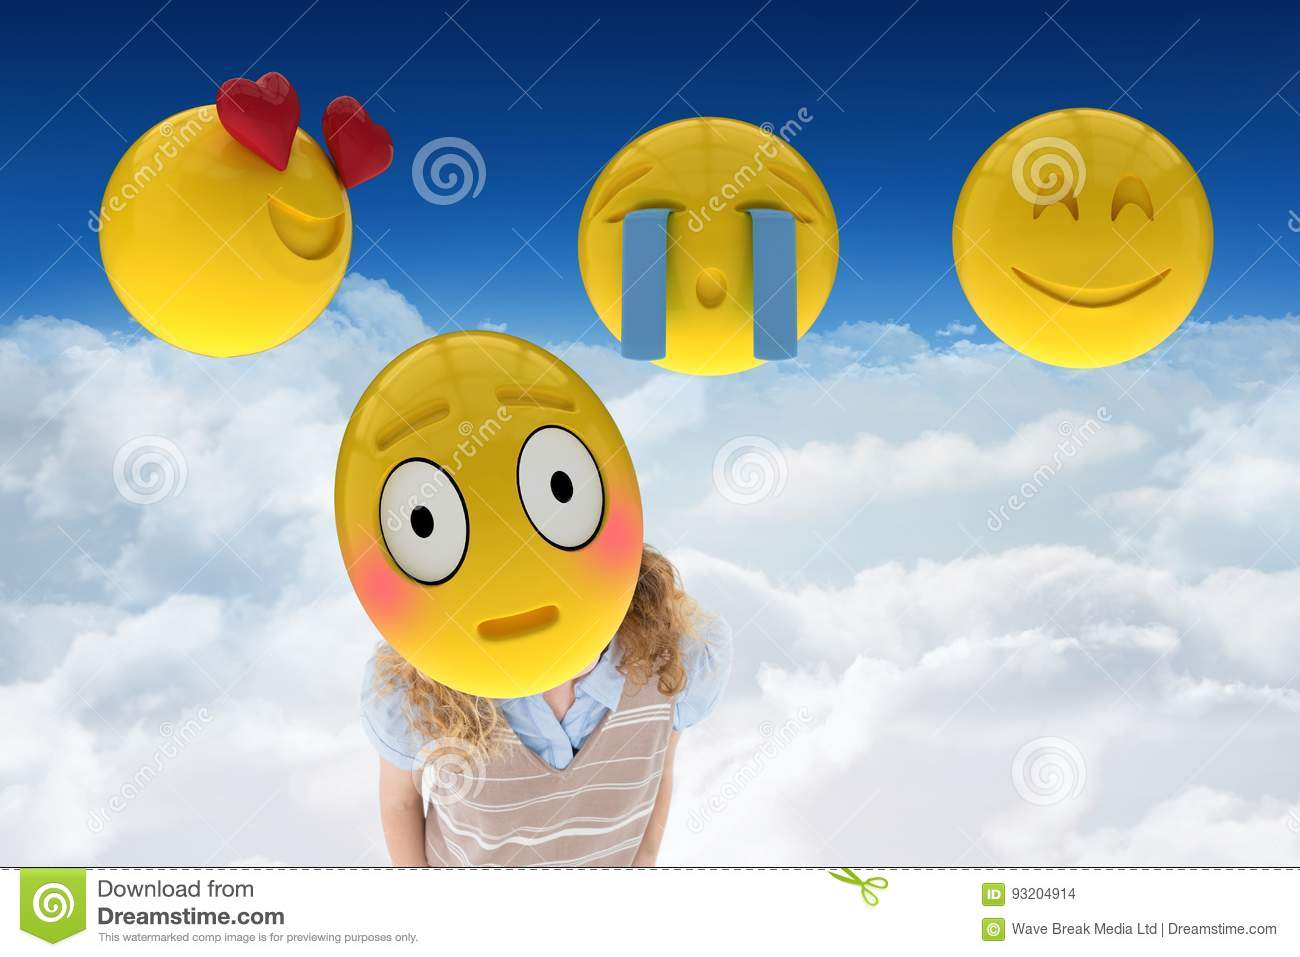 Woman With Smiley On Her Face Against Cloudy Background Stock Photo